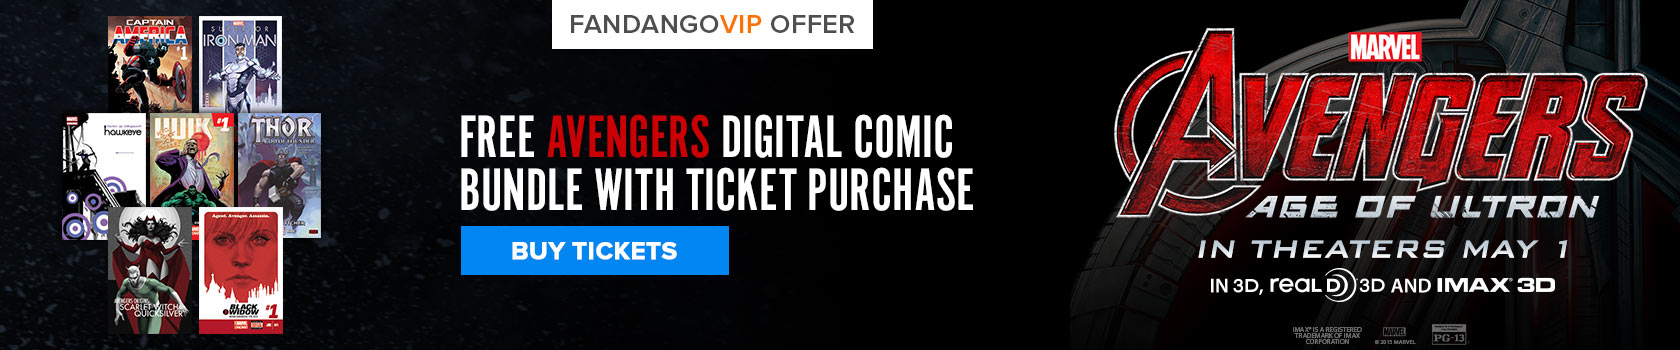 Avengers: Age of Ultron Free Gift With Purchase